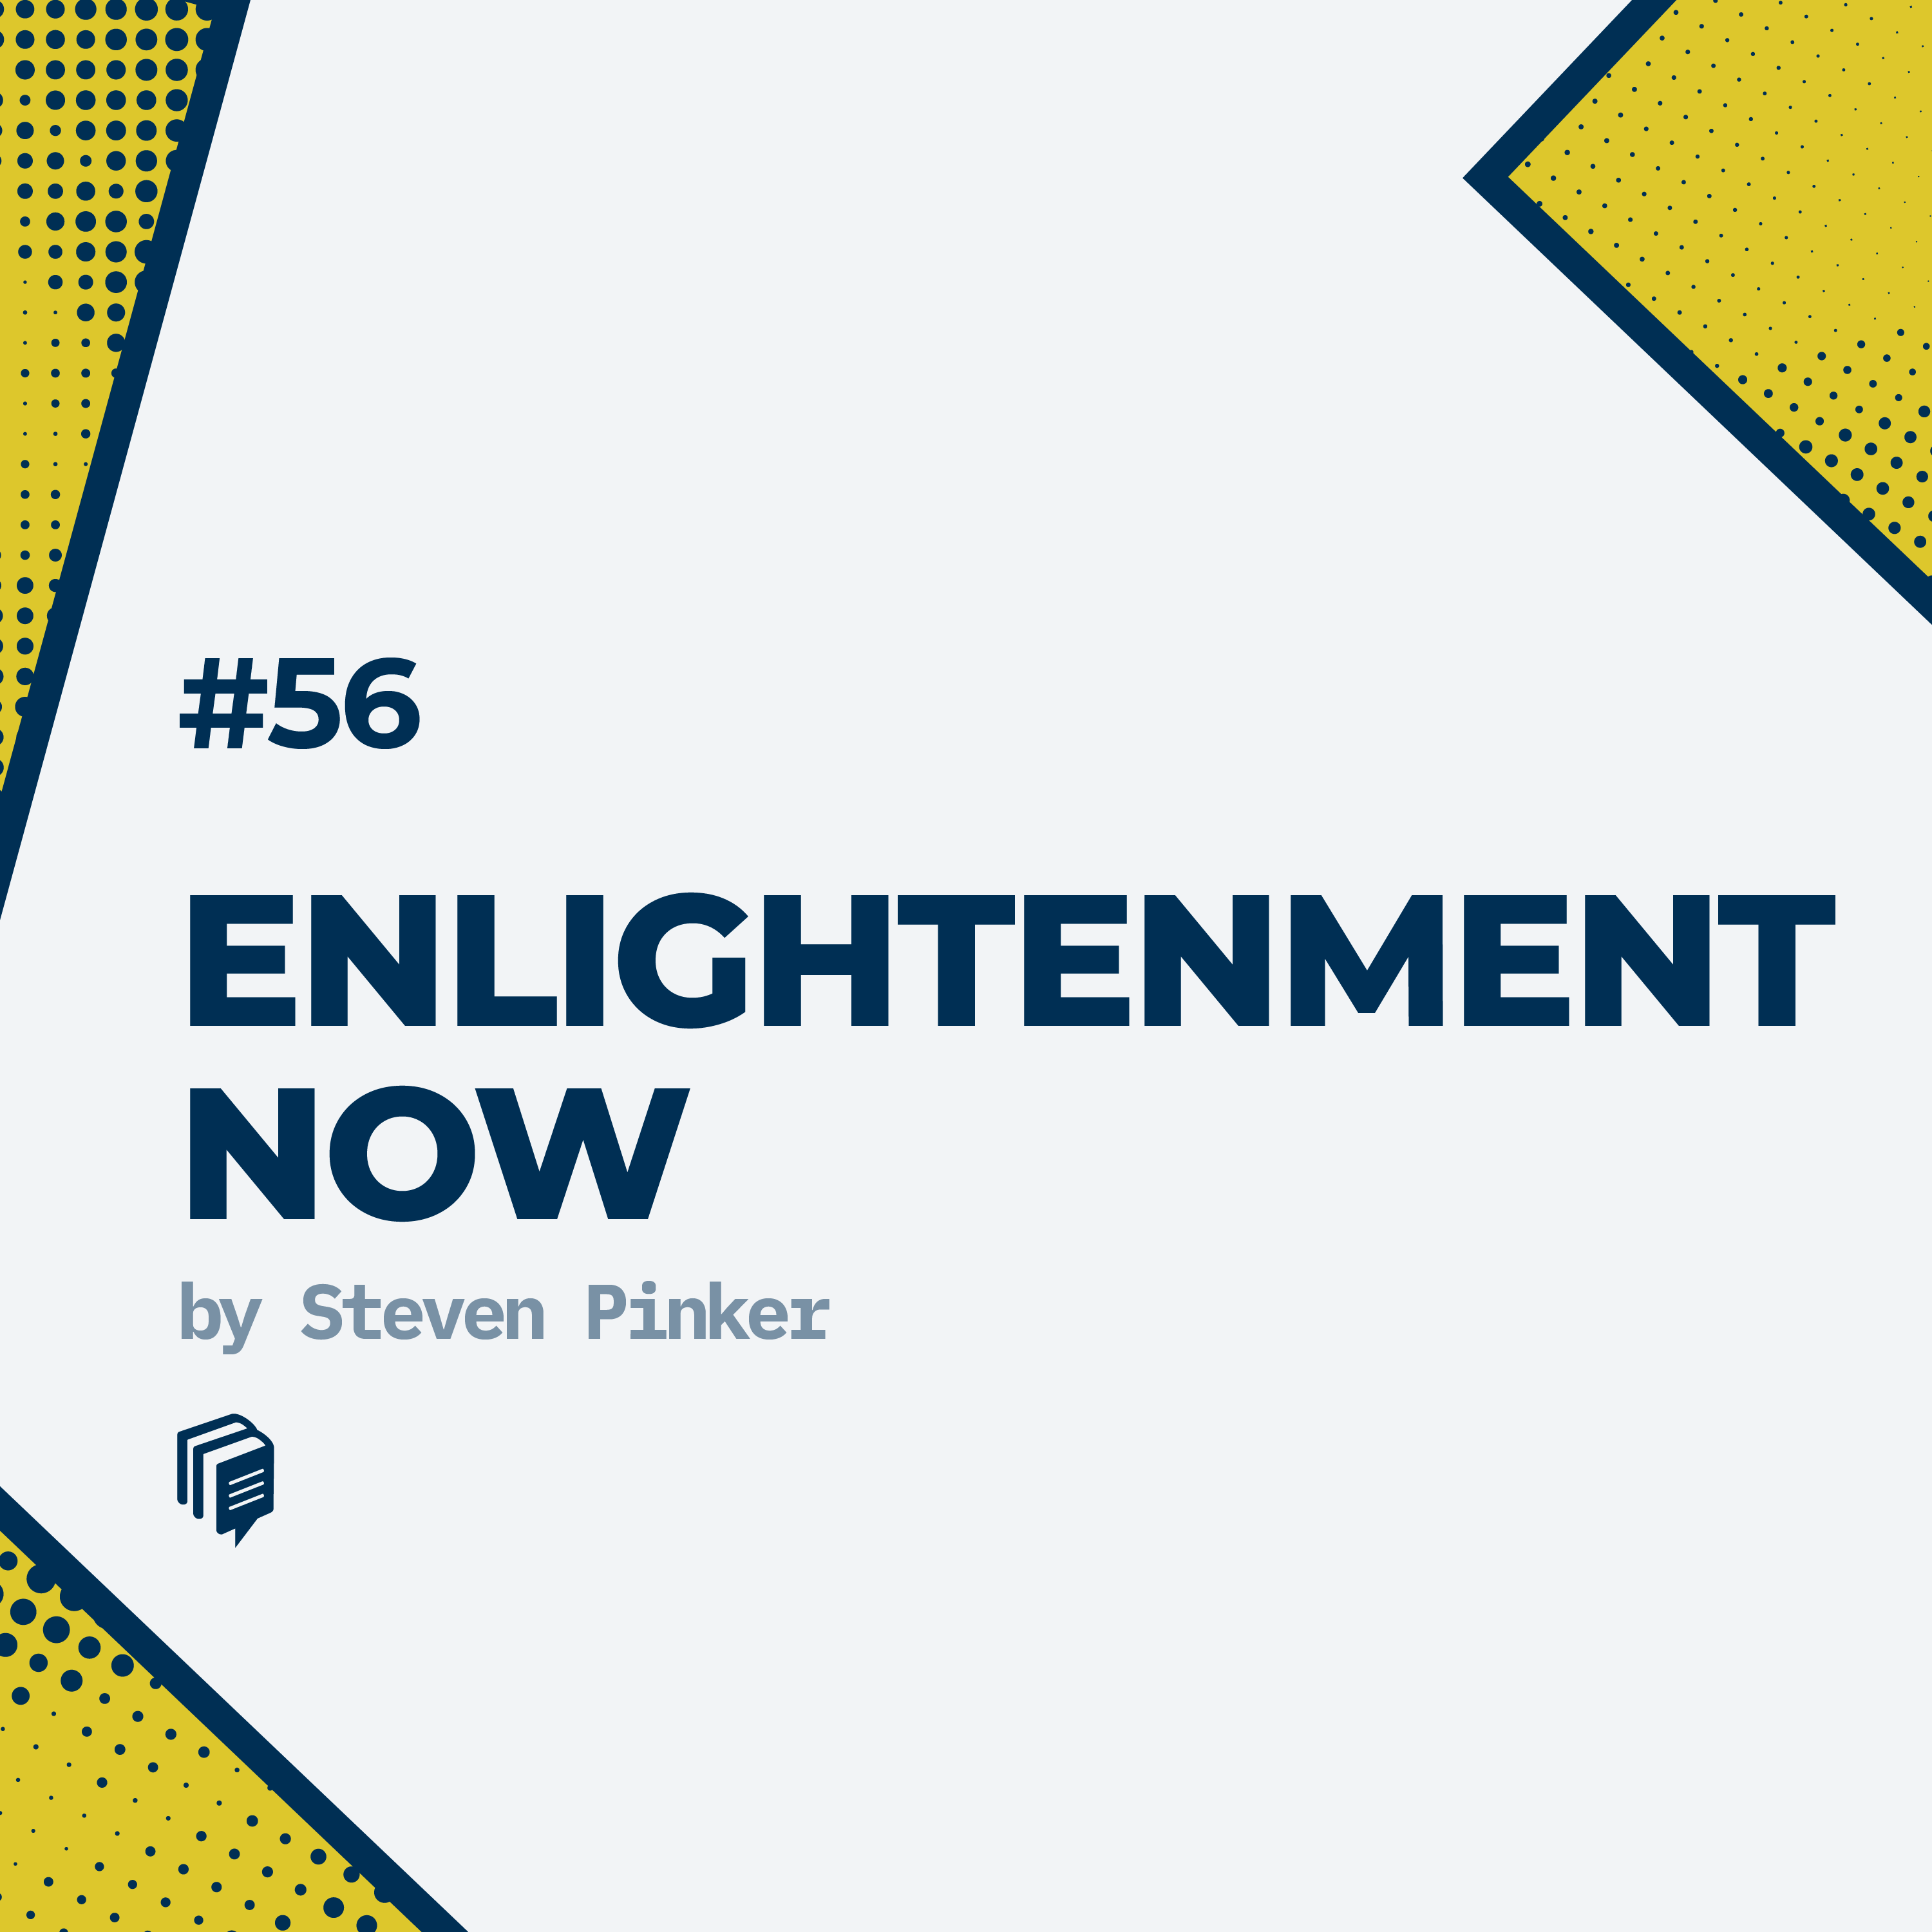 56: Enlightenment Now (اینک روشنگری)